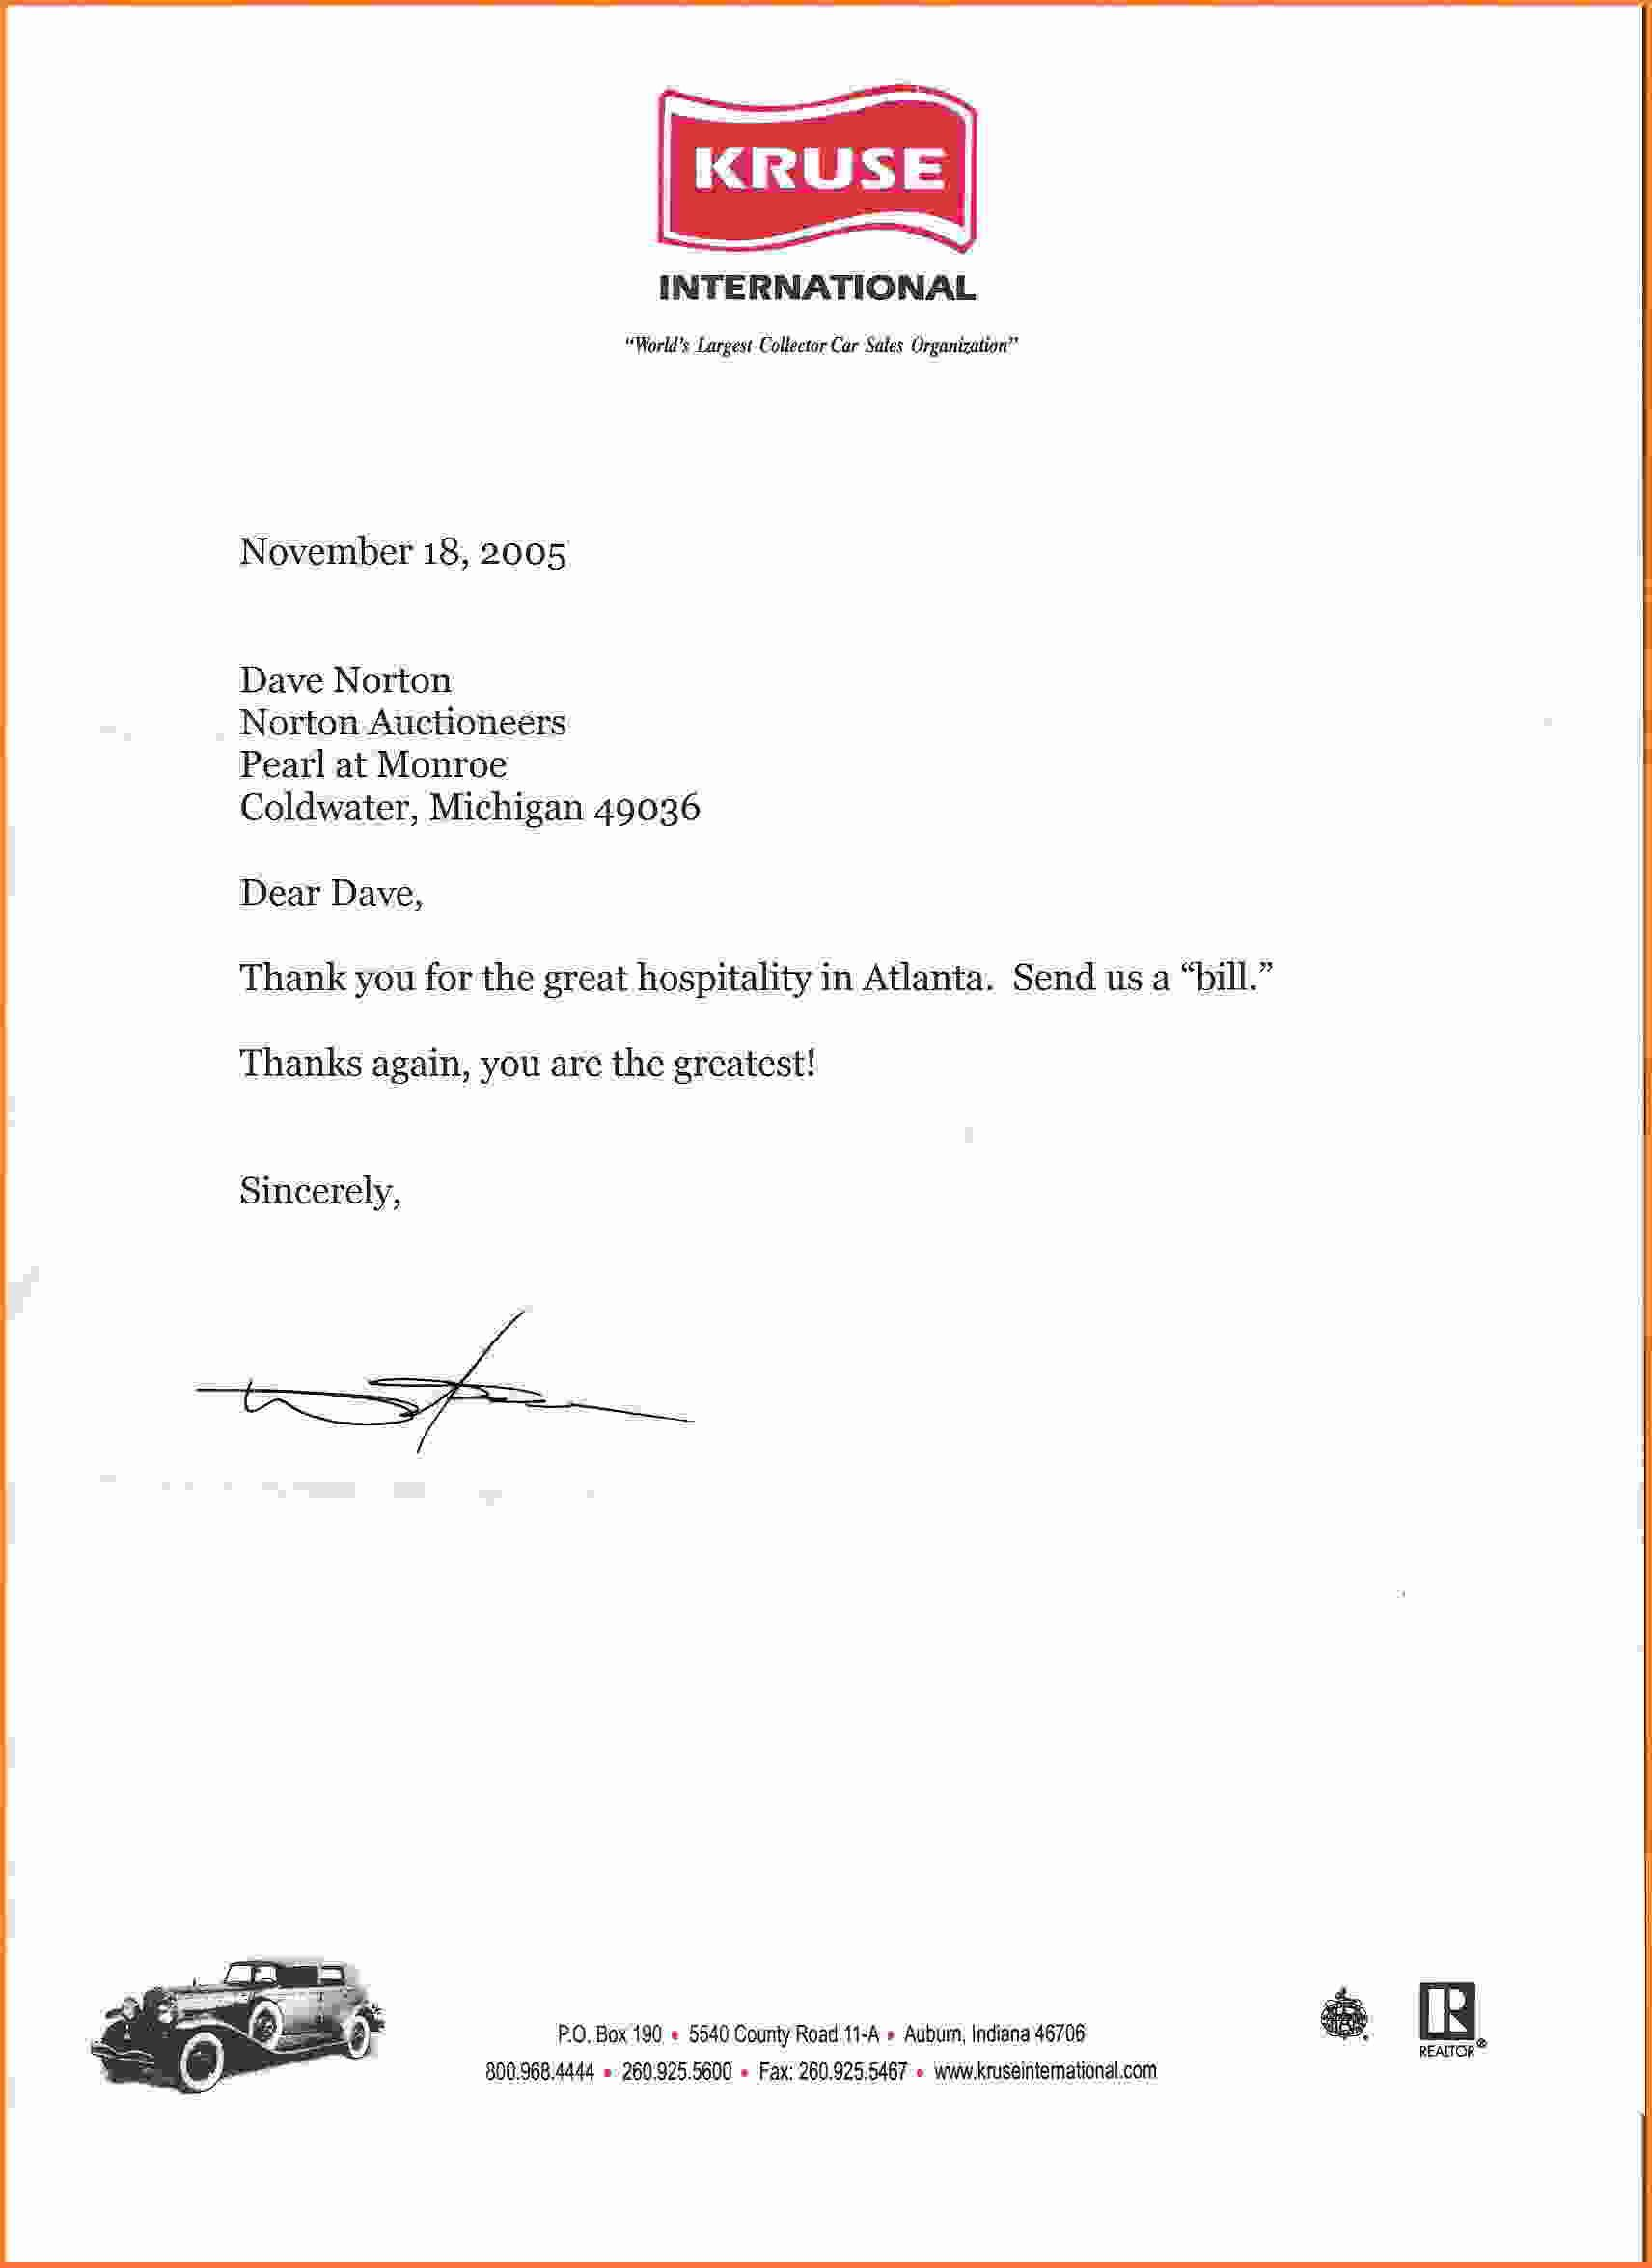 Hospitality Shantanua Thank You Note Notes Letter Appreciation